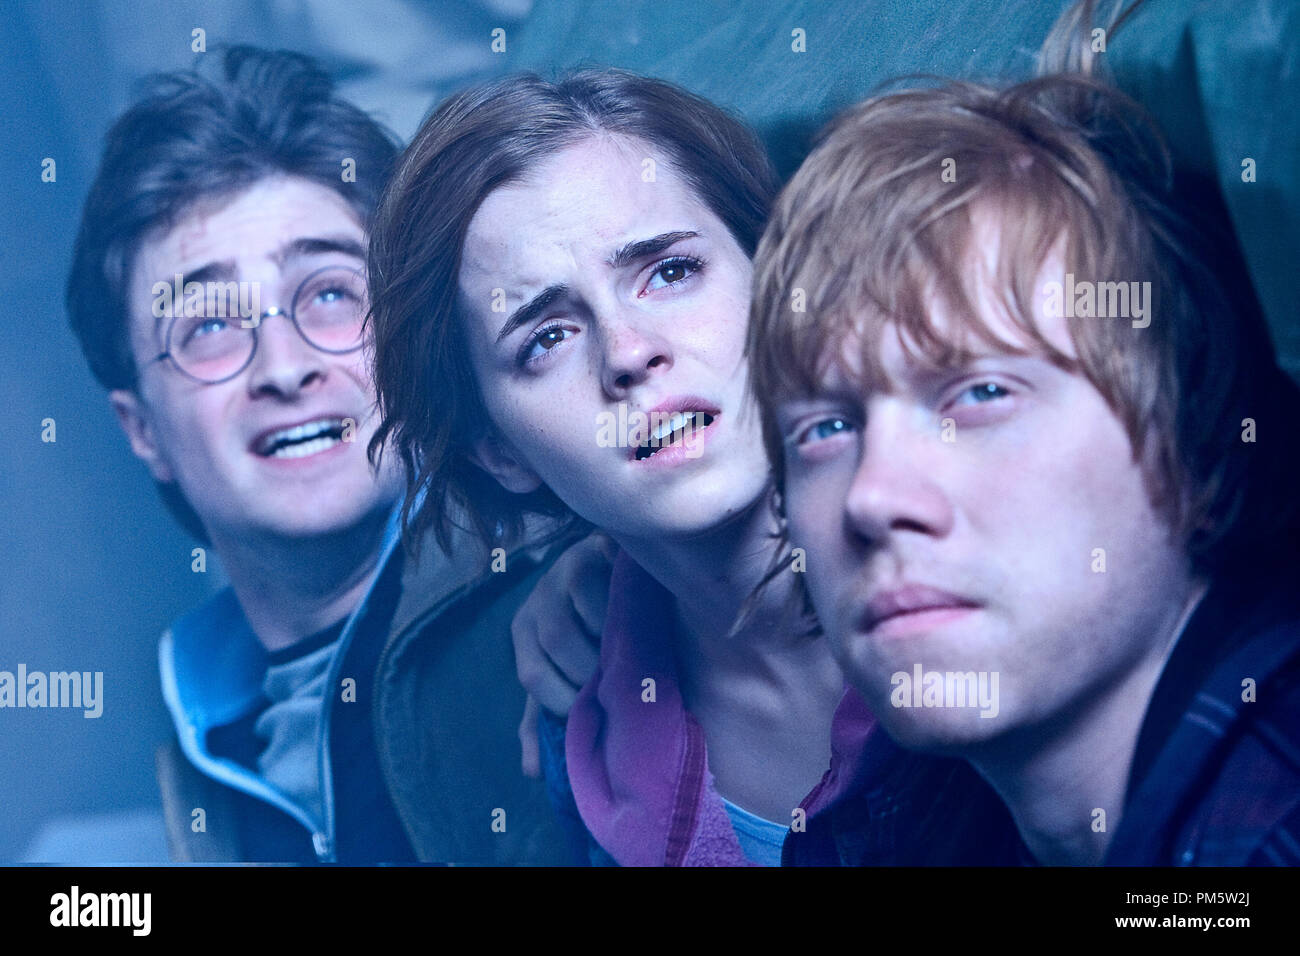 """(L-r) DANIEL RADCLIFFE as Harry Potter, EMMA WATSON as Hermione Granger and RUPERT GRINT as Ron Weasley in Warner Bros. Pictures' fantasy adventure """"HARRY POTTER AND THE DEATHLY HALLOWS – PART 2,"""" a Warner Bros. Pictures release. - Stock Image"""